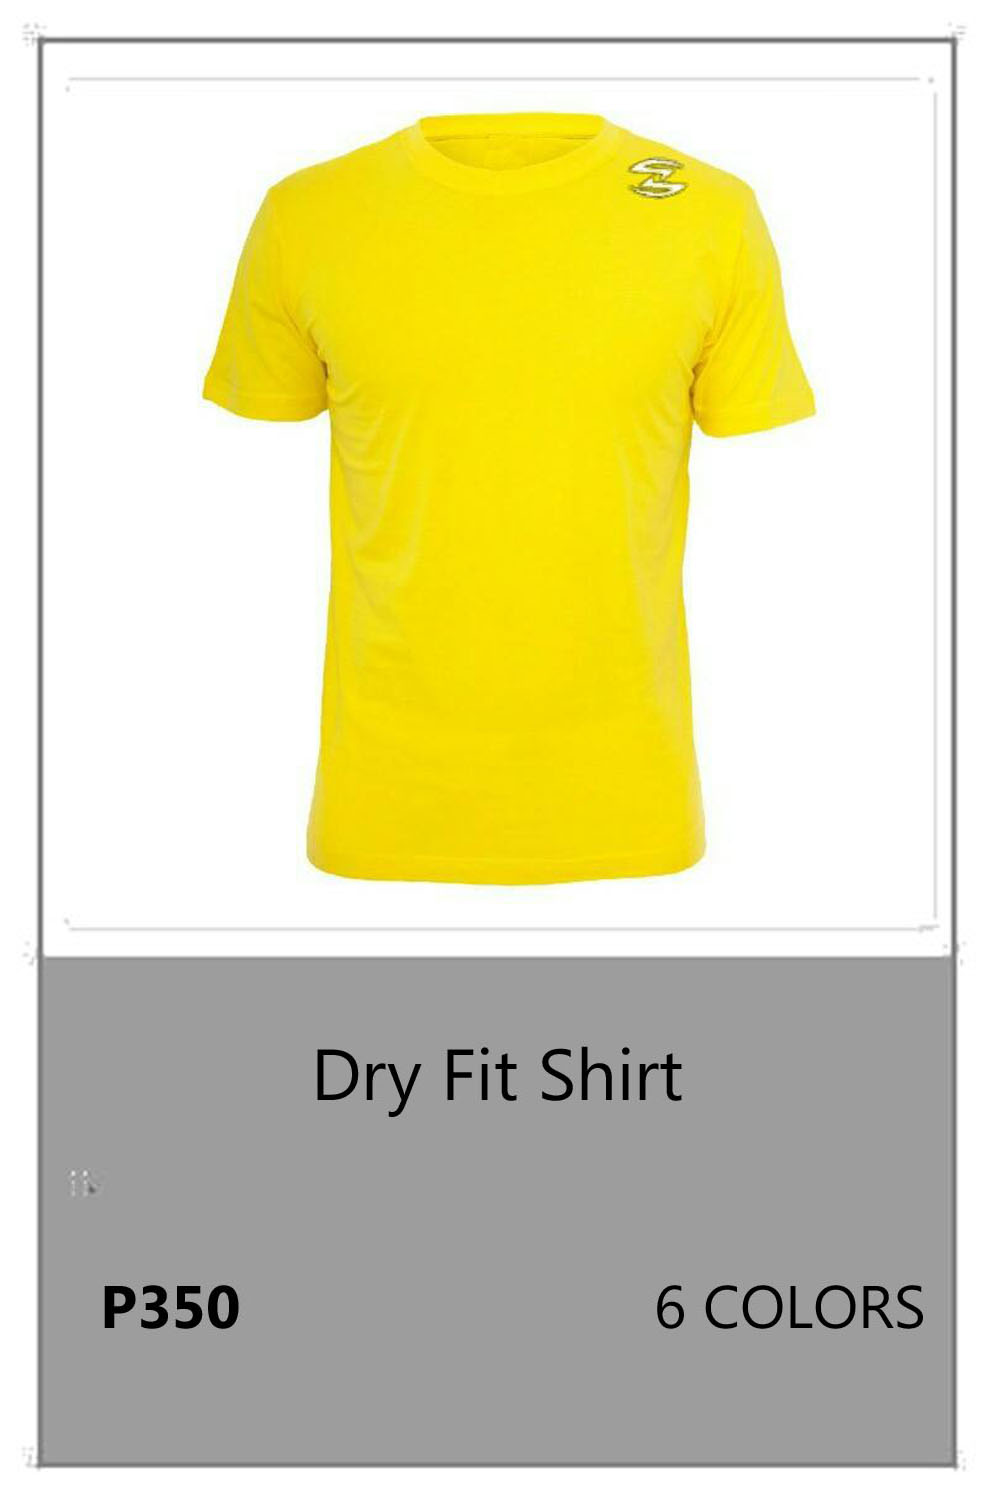 Dry Fit Yellow